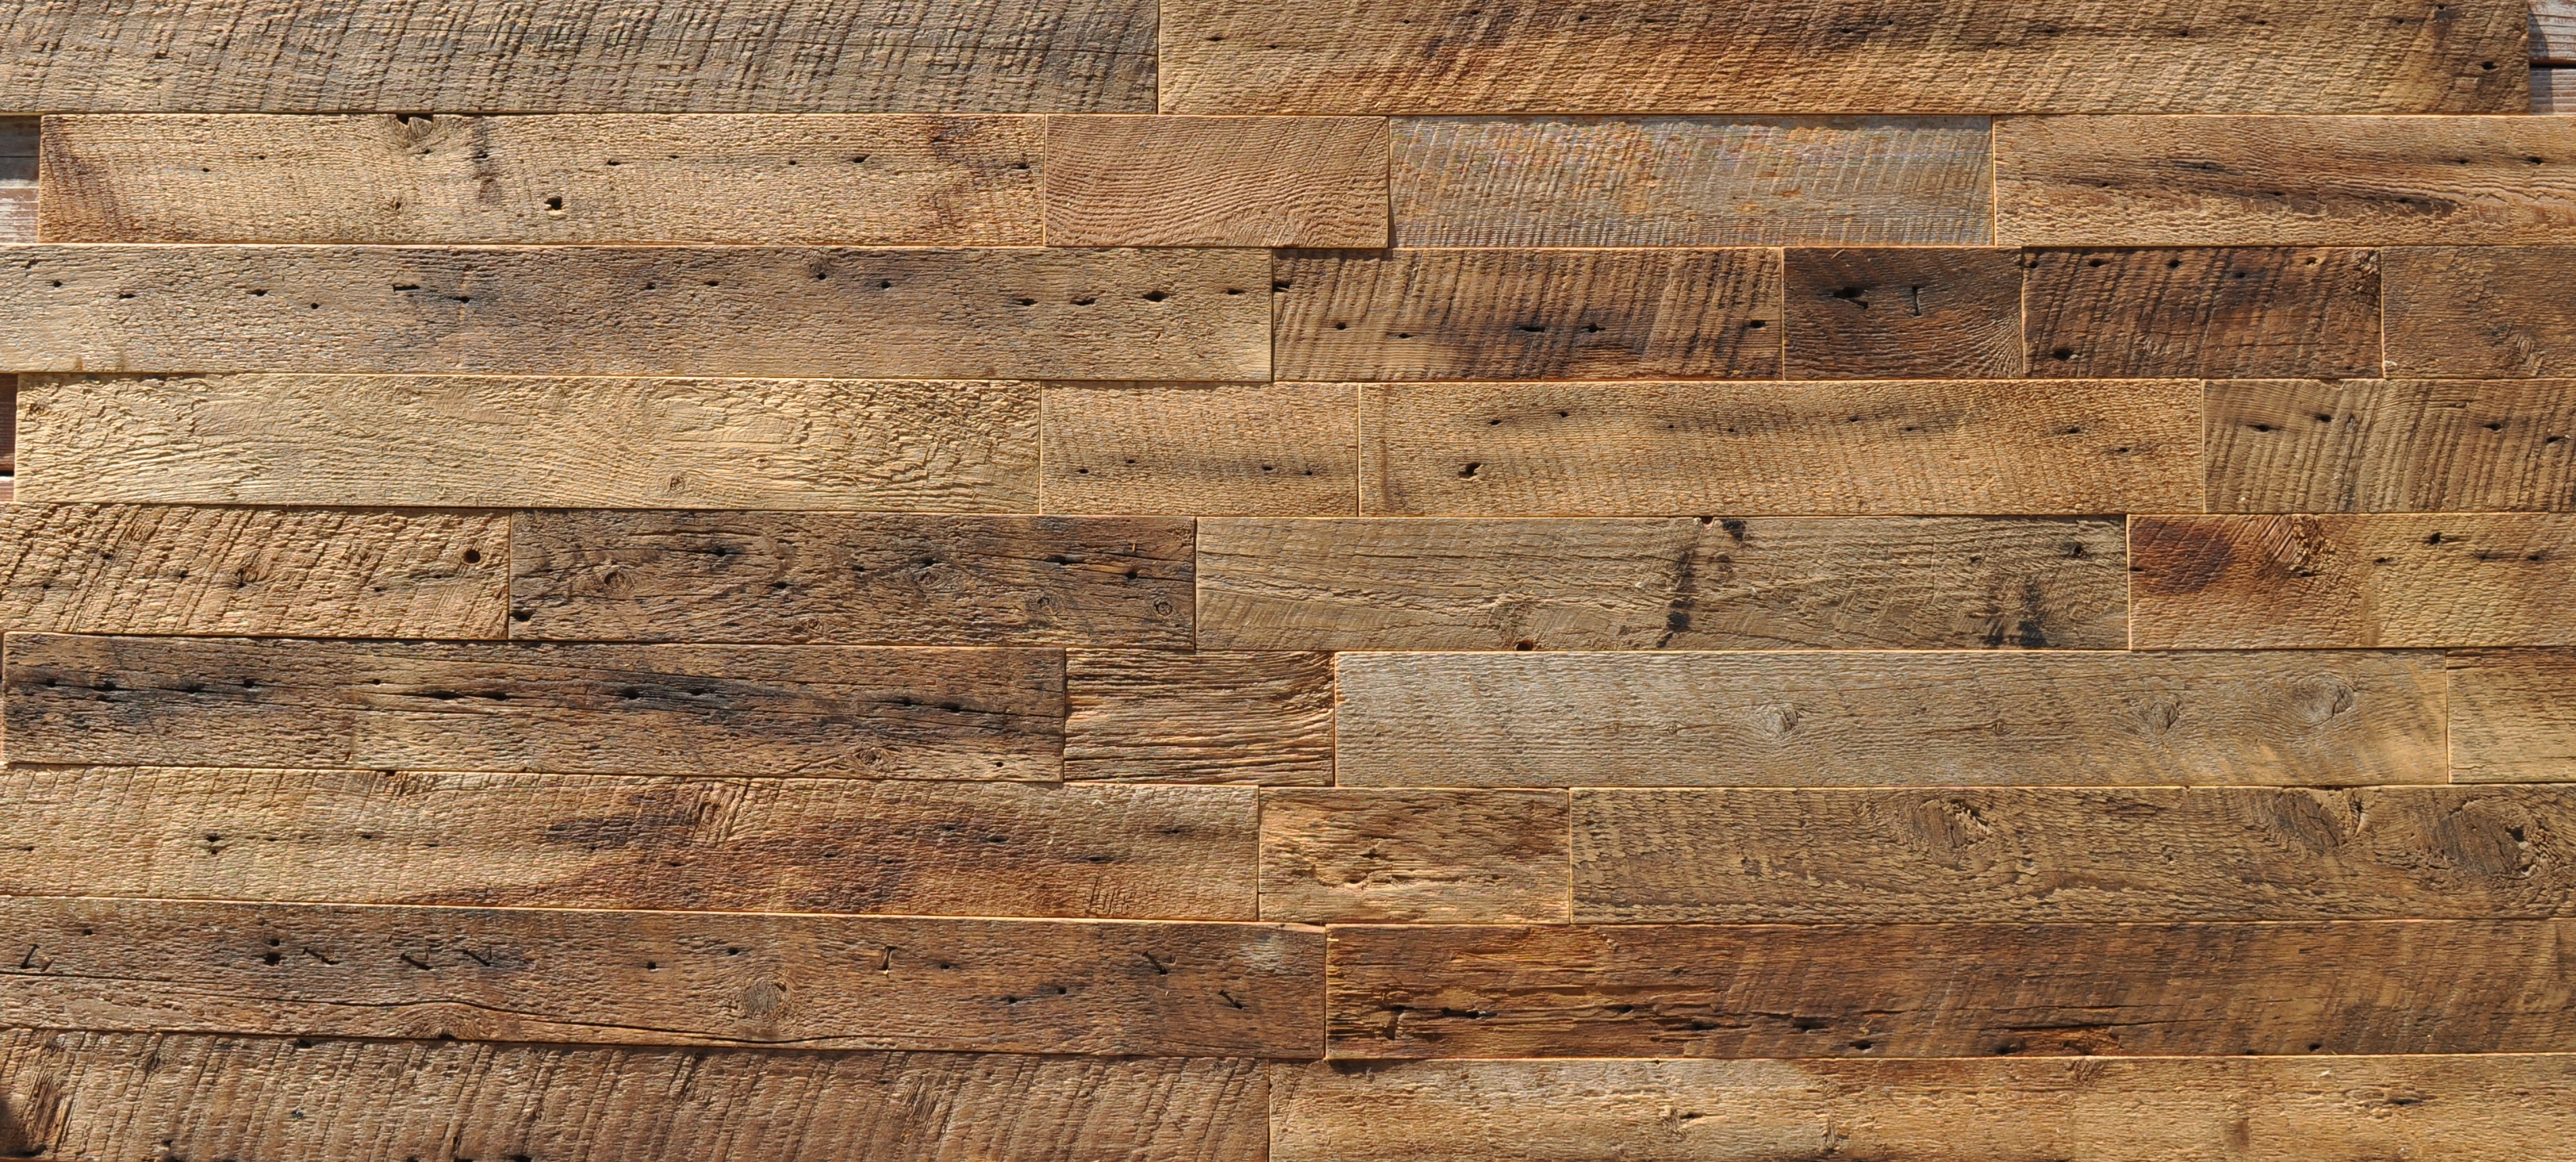 Diy reclaimed wood accent wall brown waxed and sealed 3 5 for Recycled hardwood